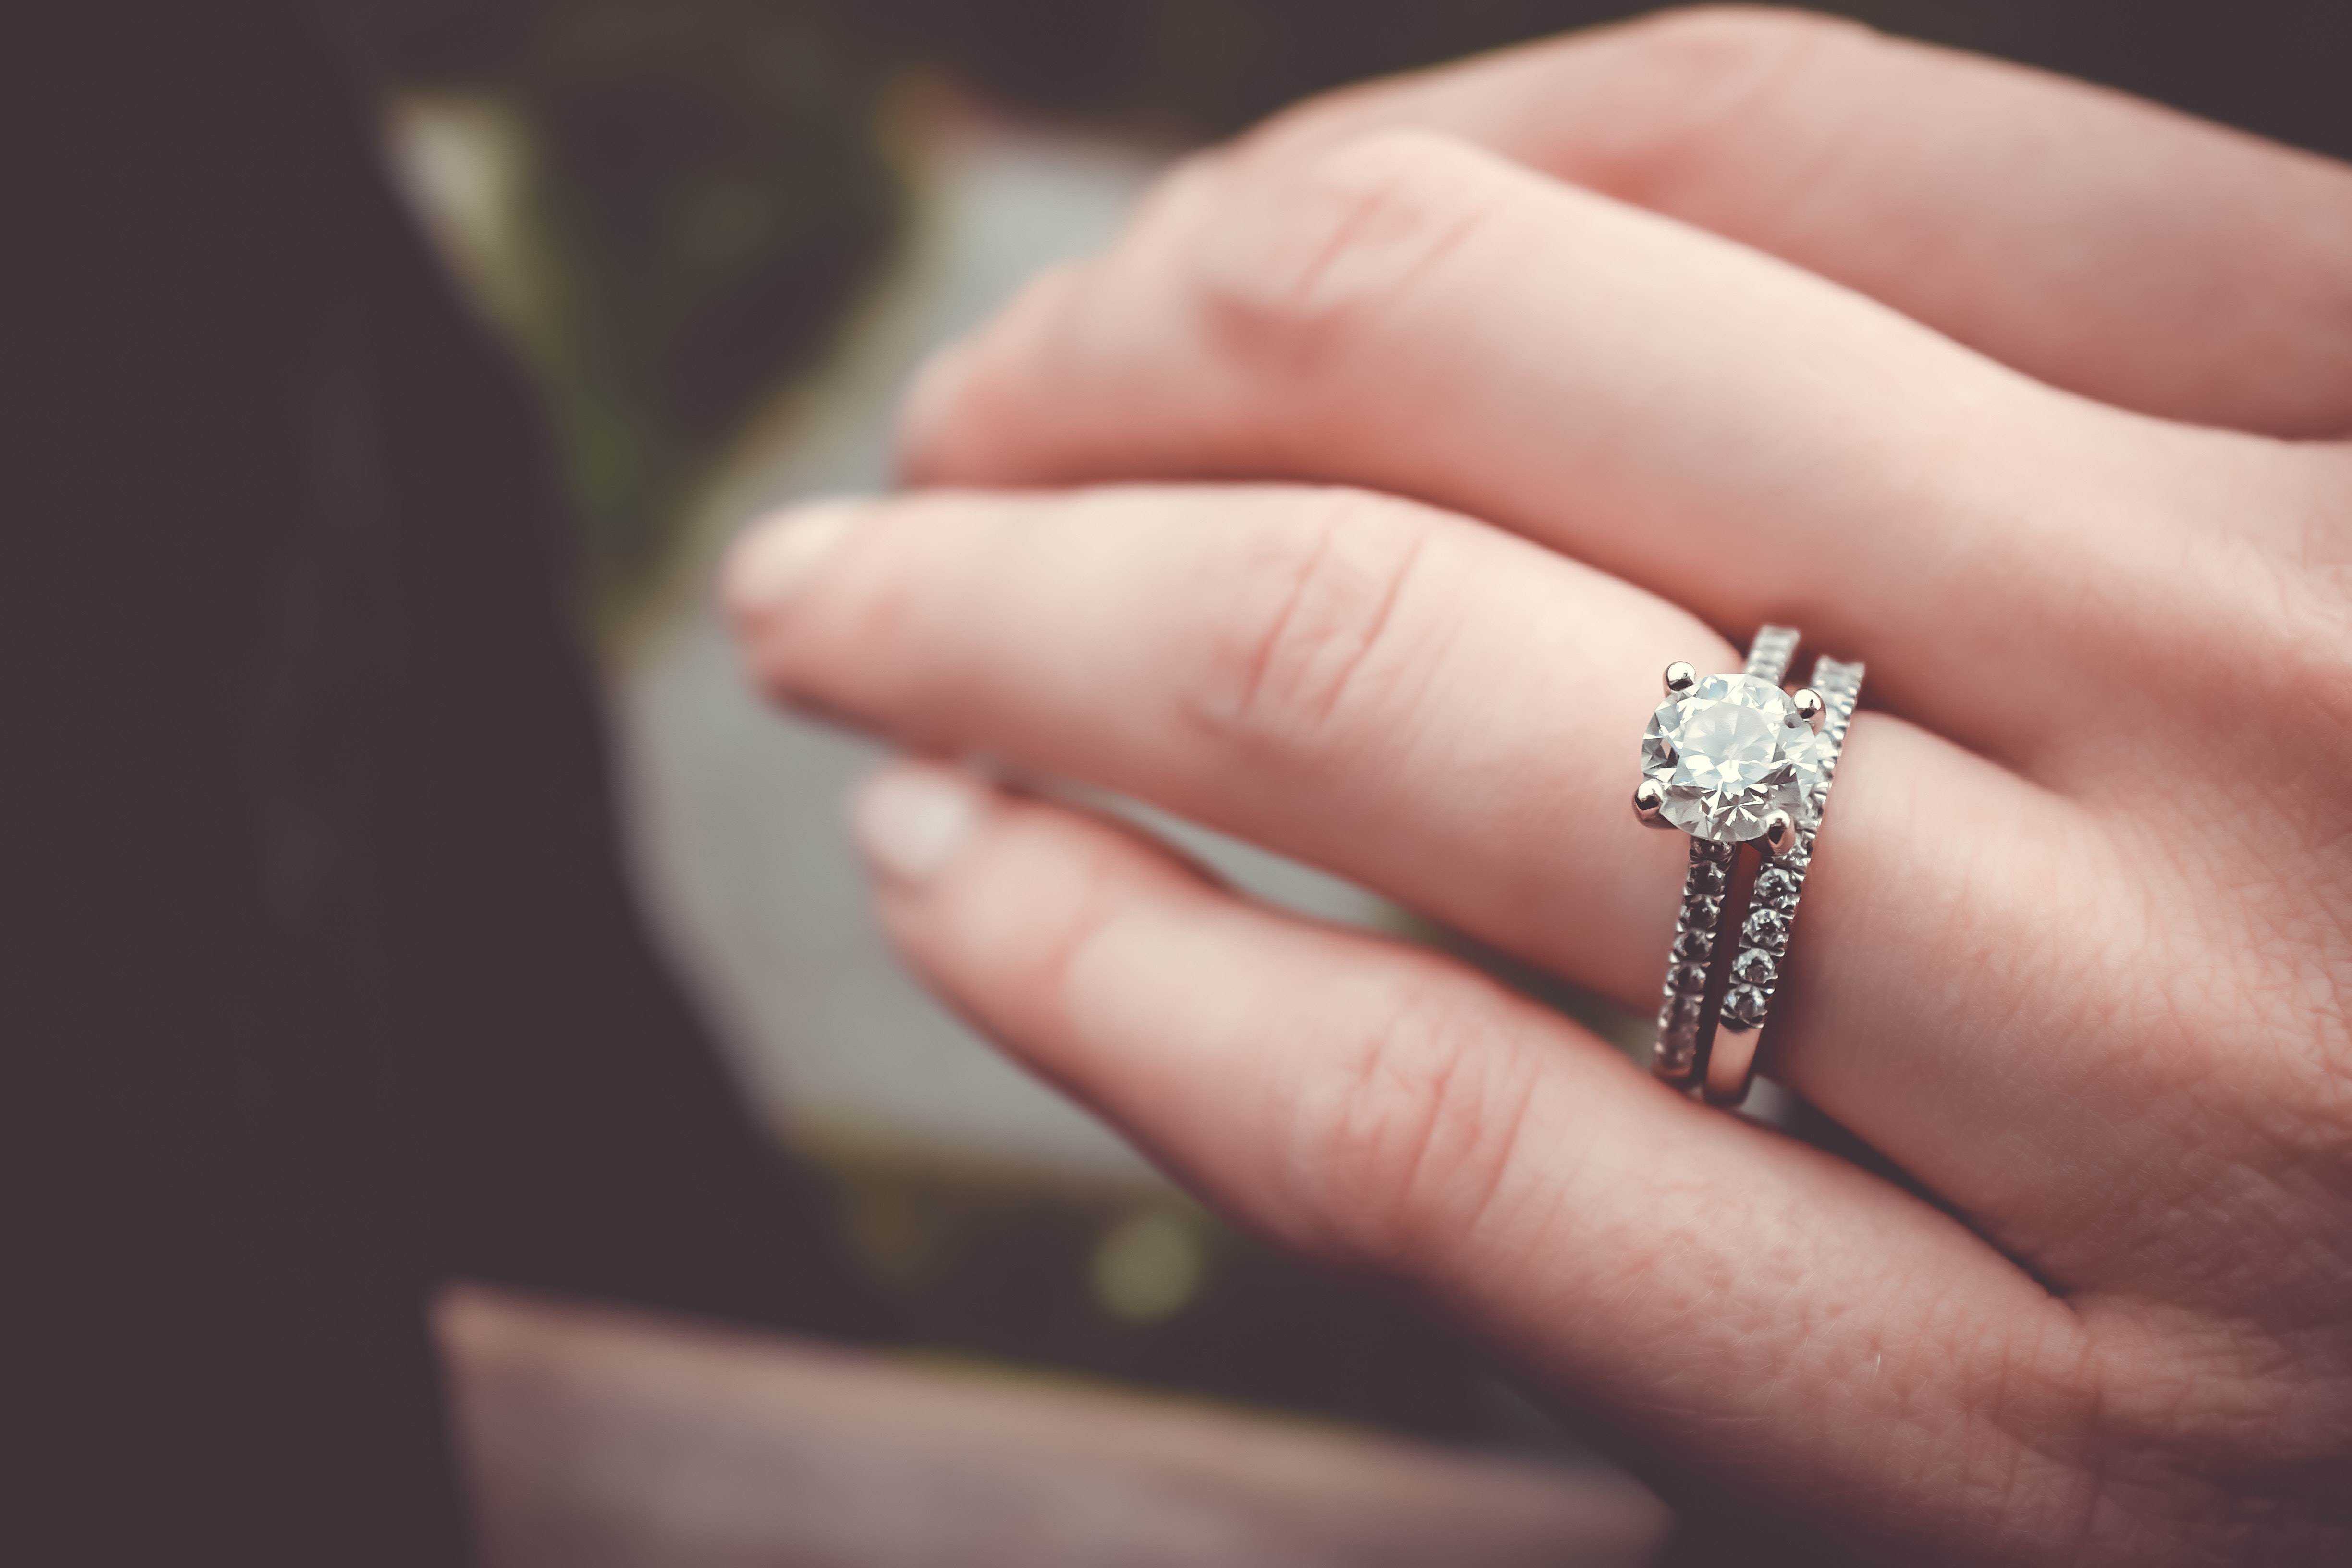 How Often Should You Clean Your Engagement Ring? The Experts Weigh In